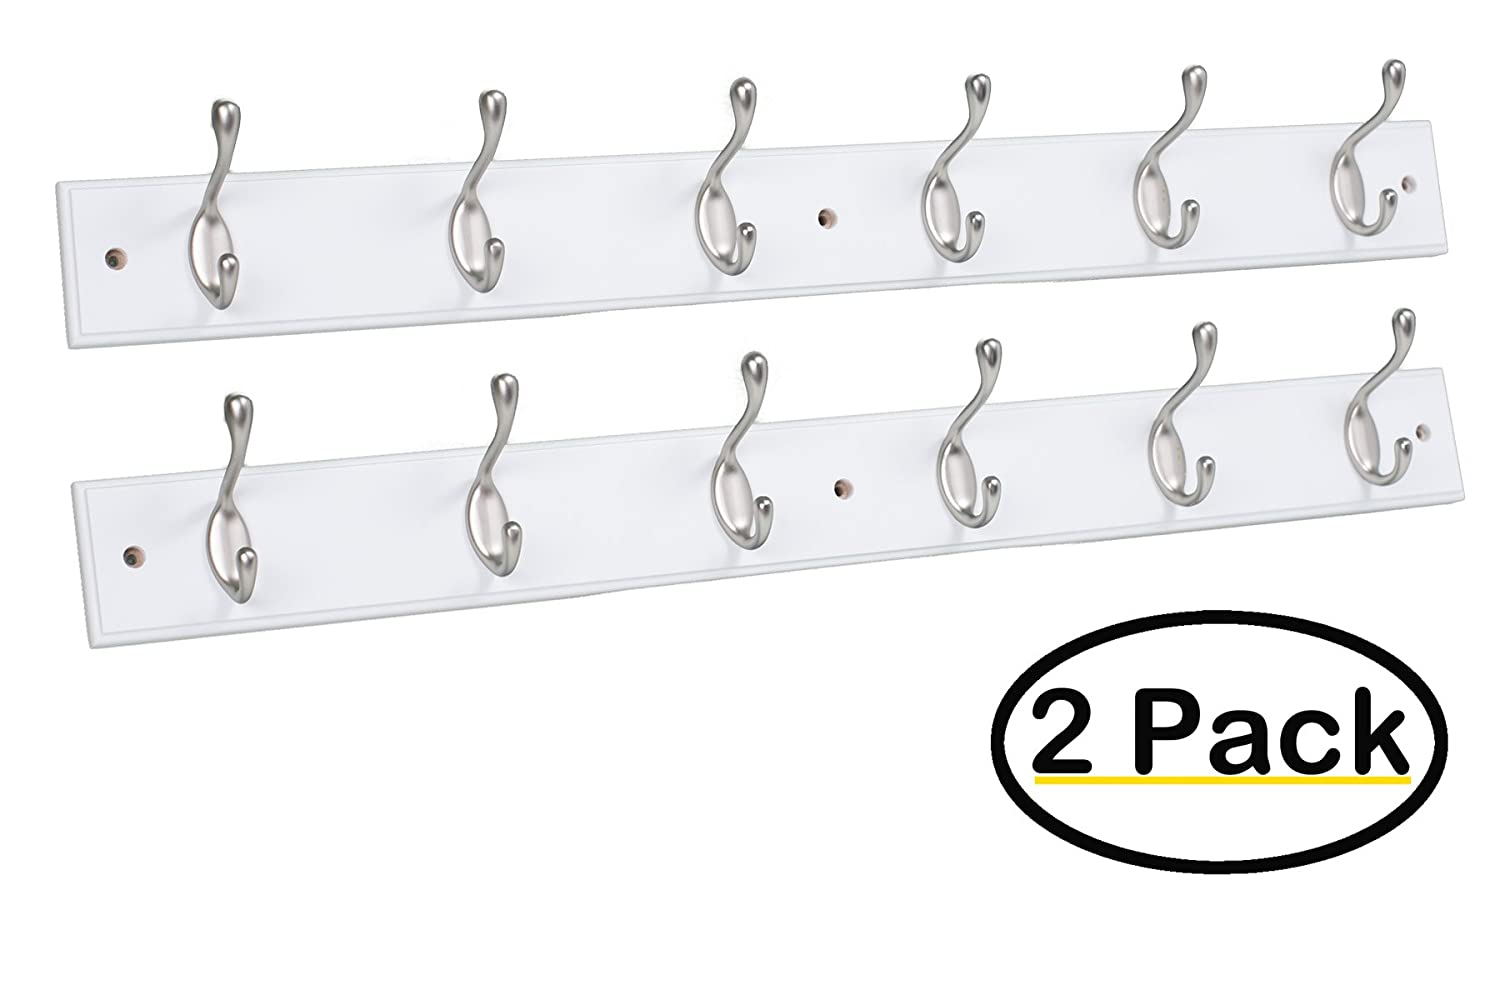 Hook Coat and Hat Rack | 2 Pack | 6 Hooks | 27 Inches | Wall Mount | Decorative Home Storage | Entryway Foyer Hallway Bathroom Bedroom Rail | Satin Nickel Hooks | White Pine Bathroom